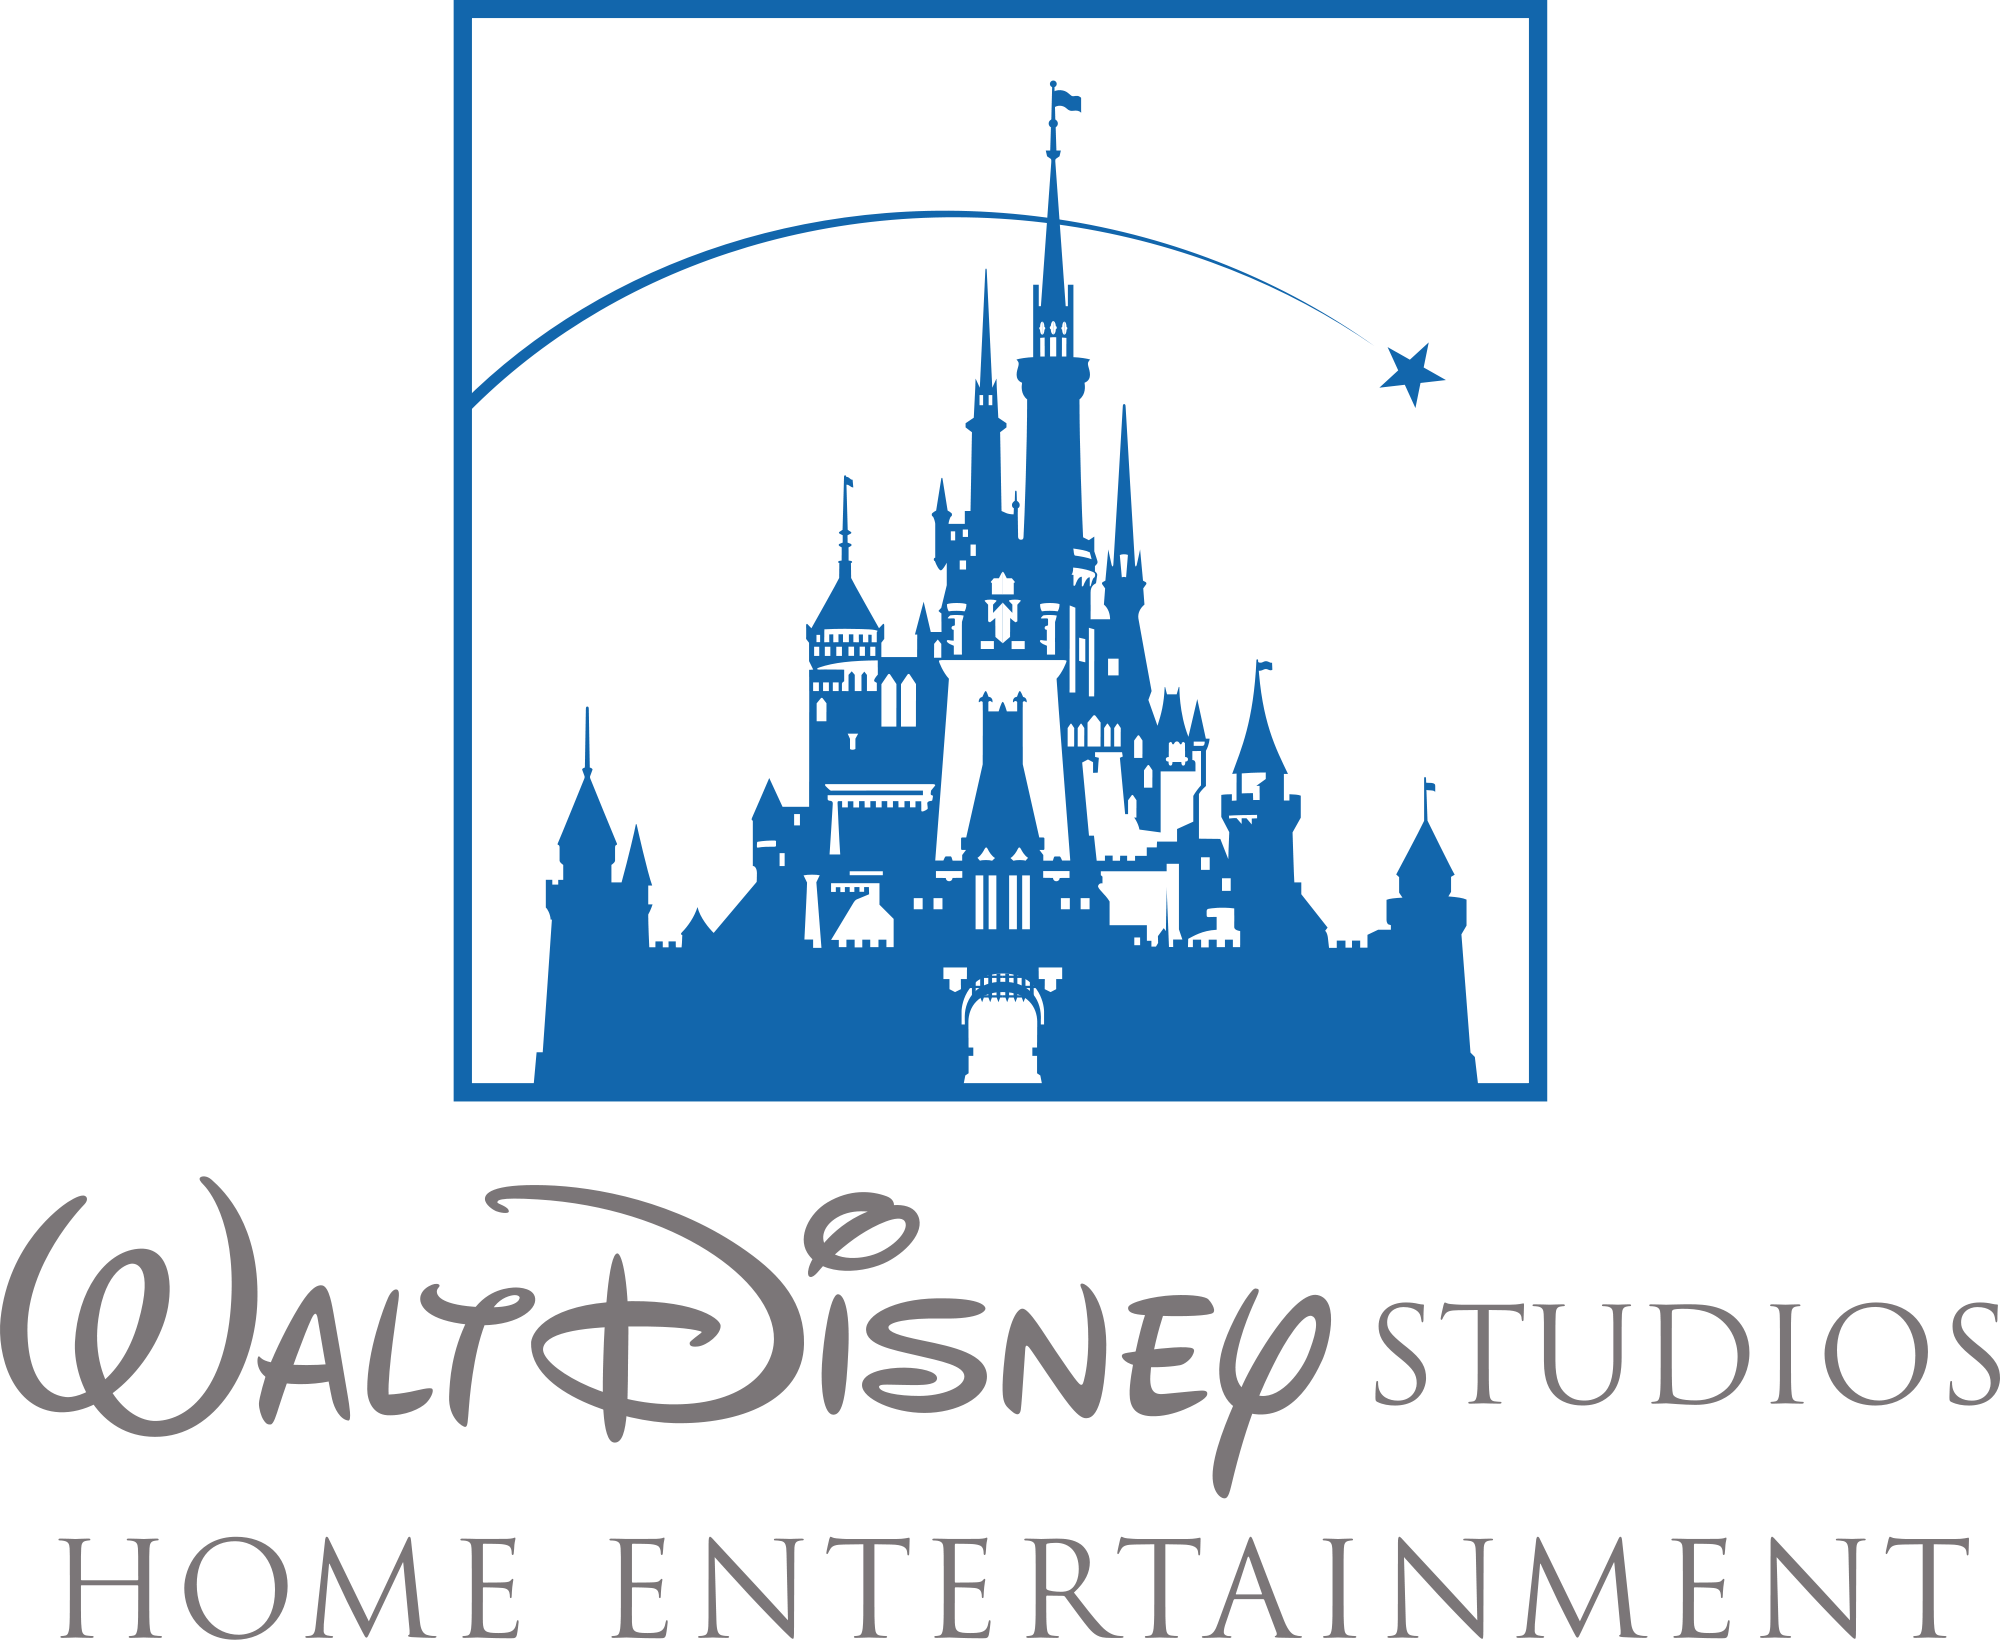 understanding disney the walt disney corporation film studies essay This guide contains a precise roadmap for writing a research paper on walt disney follow it step by step and you will have an accomplished essay, which will earn you an a+ from your professor.